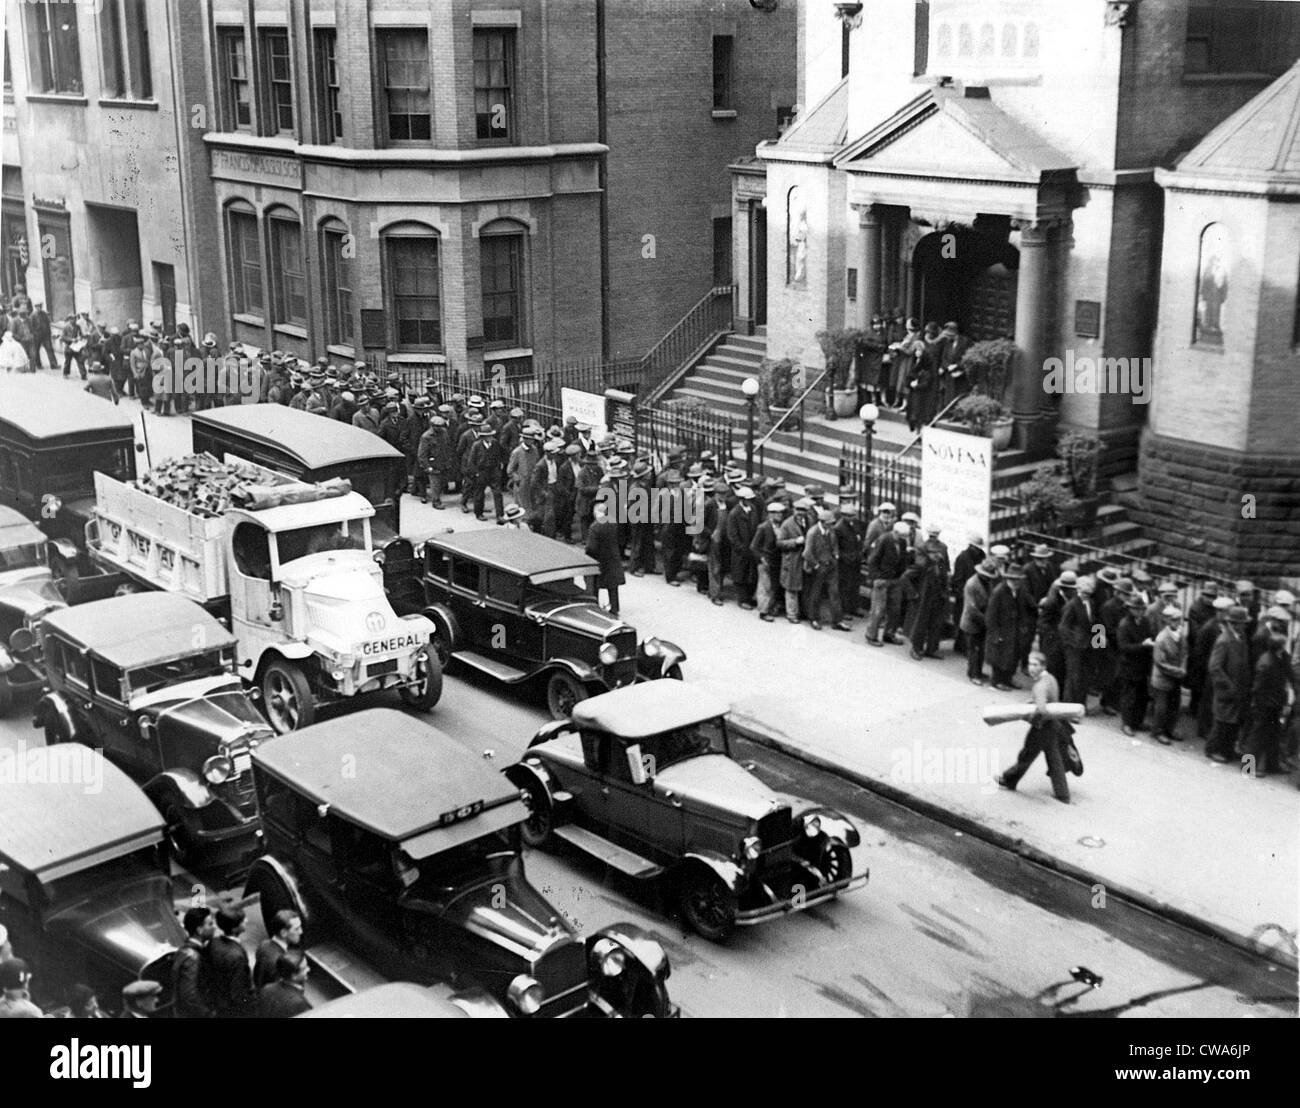 DEPRESSION- Jobless men lined up in front of St. Francis of Assisi Church waiting to receive a nickel each from - Stock Image